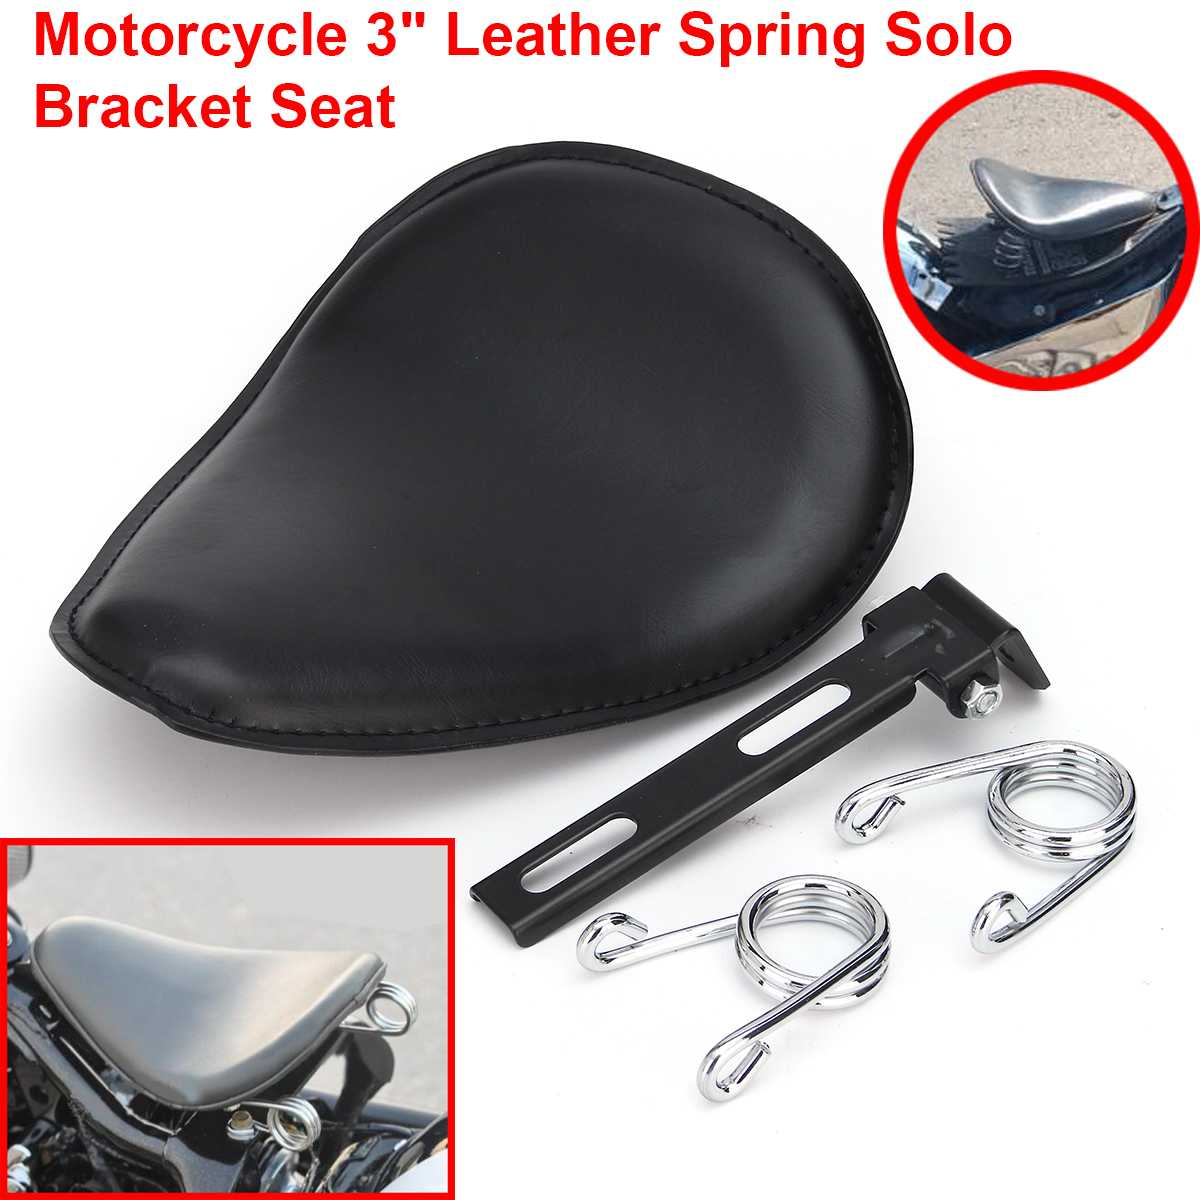 3 Inch Motorcycle Solo Seat Leather Spring Solo Bracket Saddle Seat Baseplate  Springs Bracket Mounting Kit